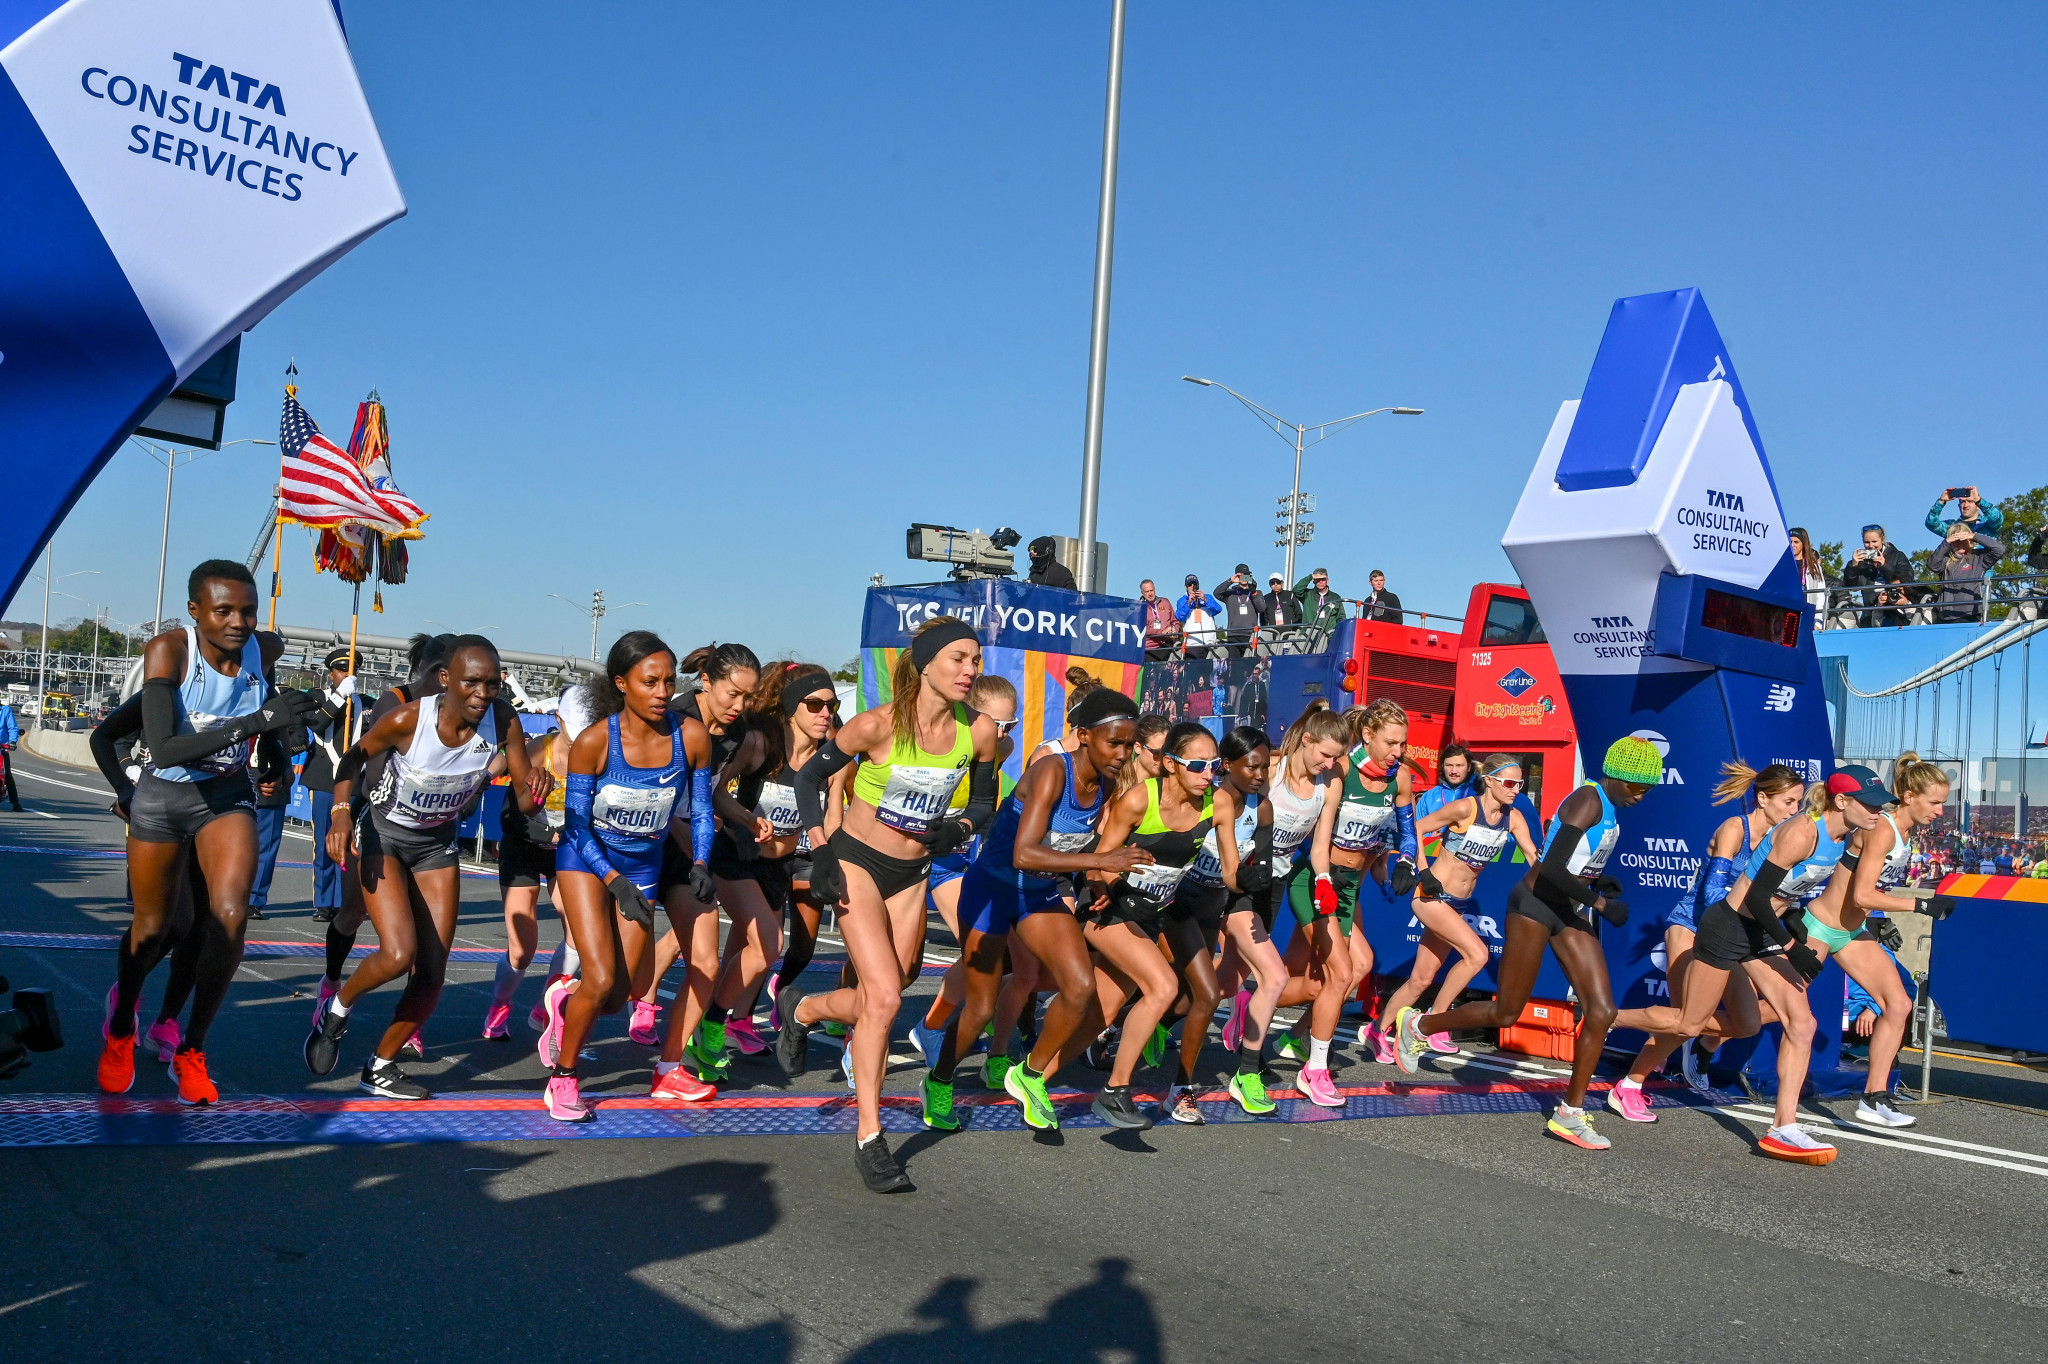 Extensive COVID-19 countermeasures to be in place at New York City Marathon